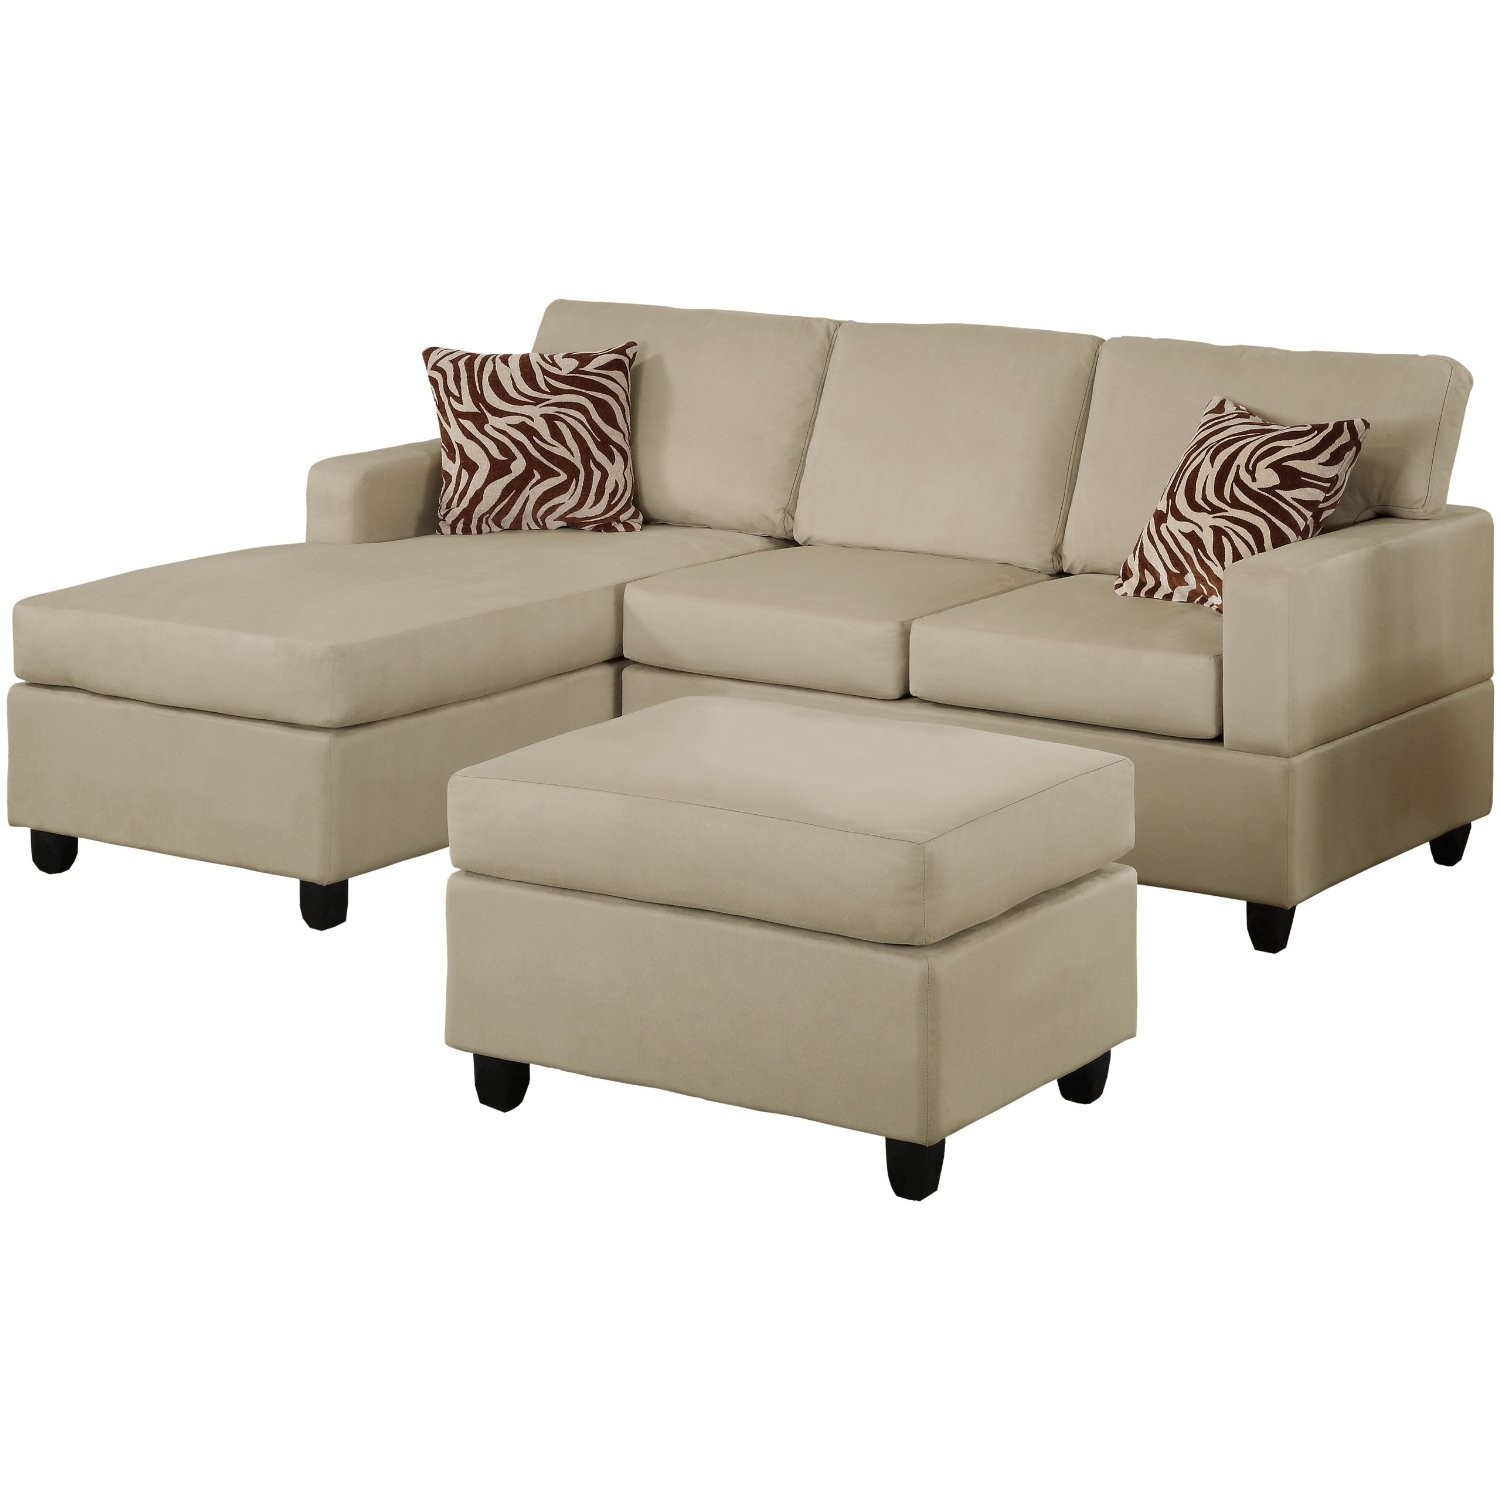 Sofas and More Modern Best sofas and More sofa Design Ideas with sofas and More Photograph